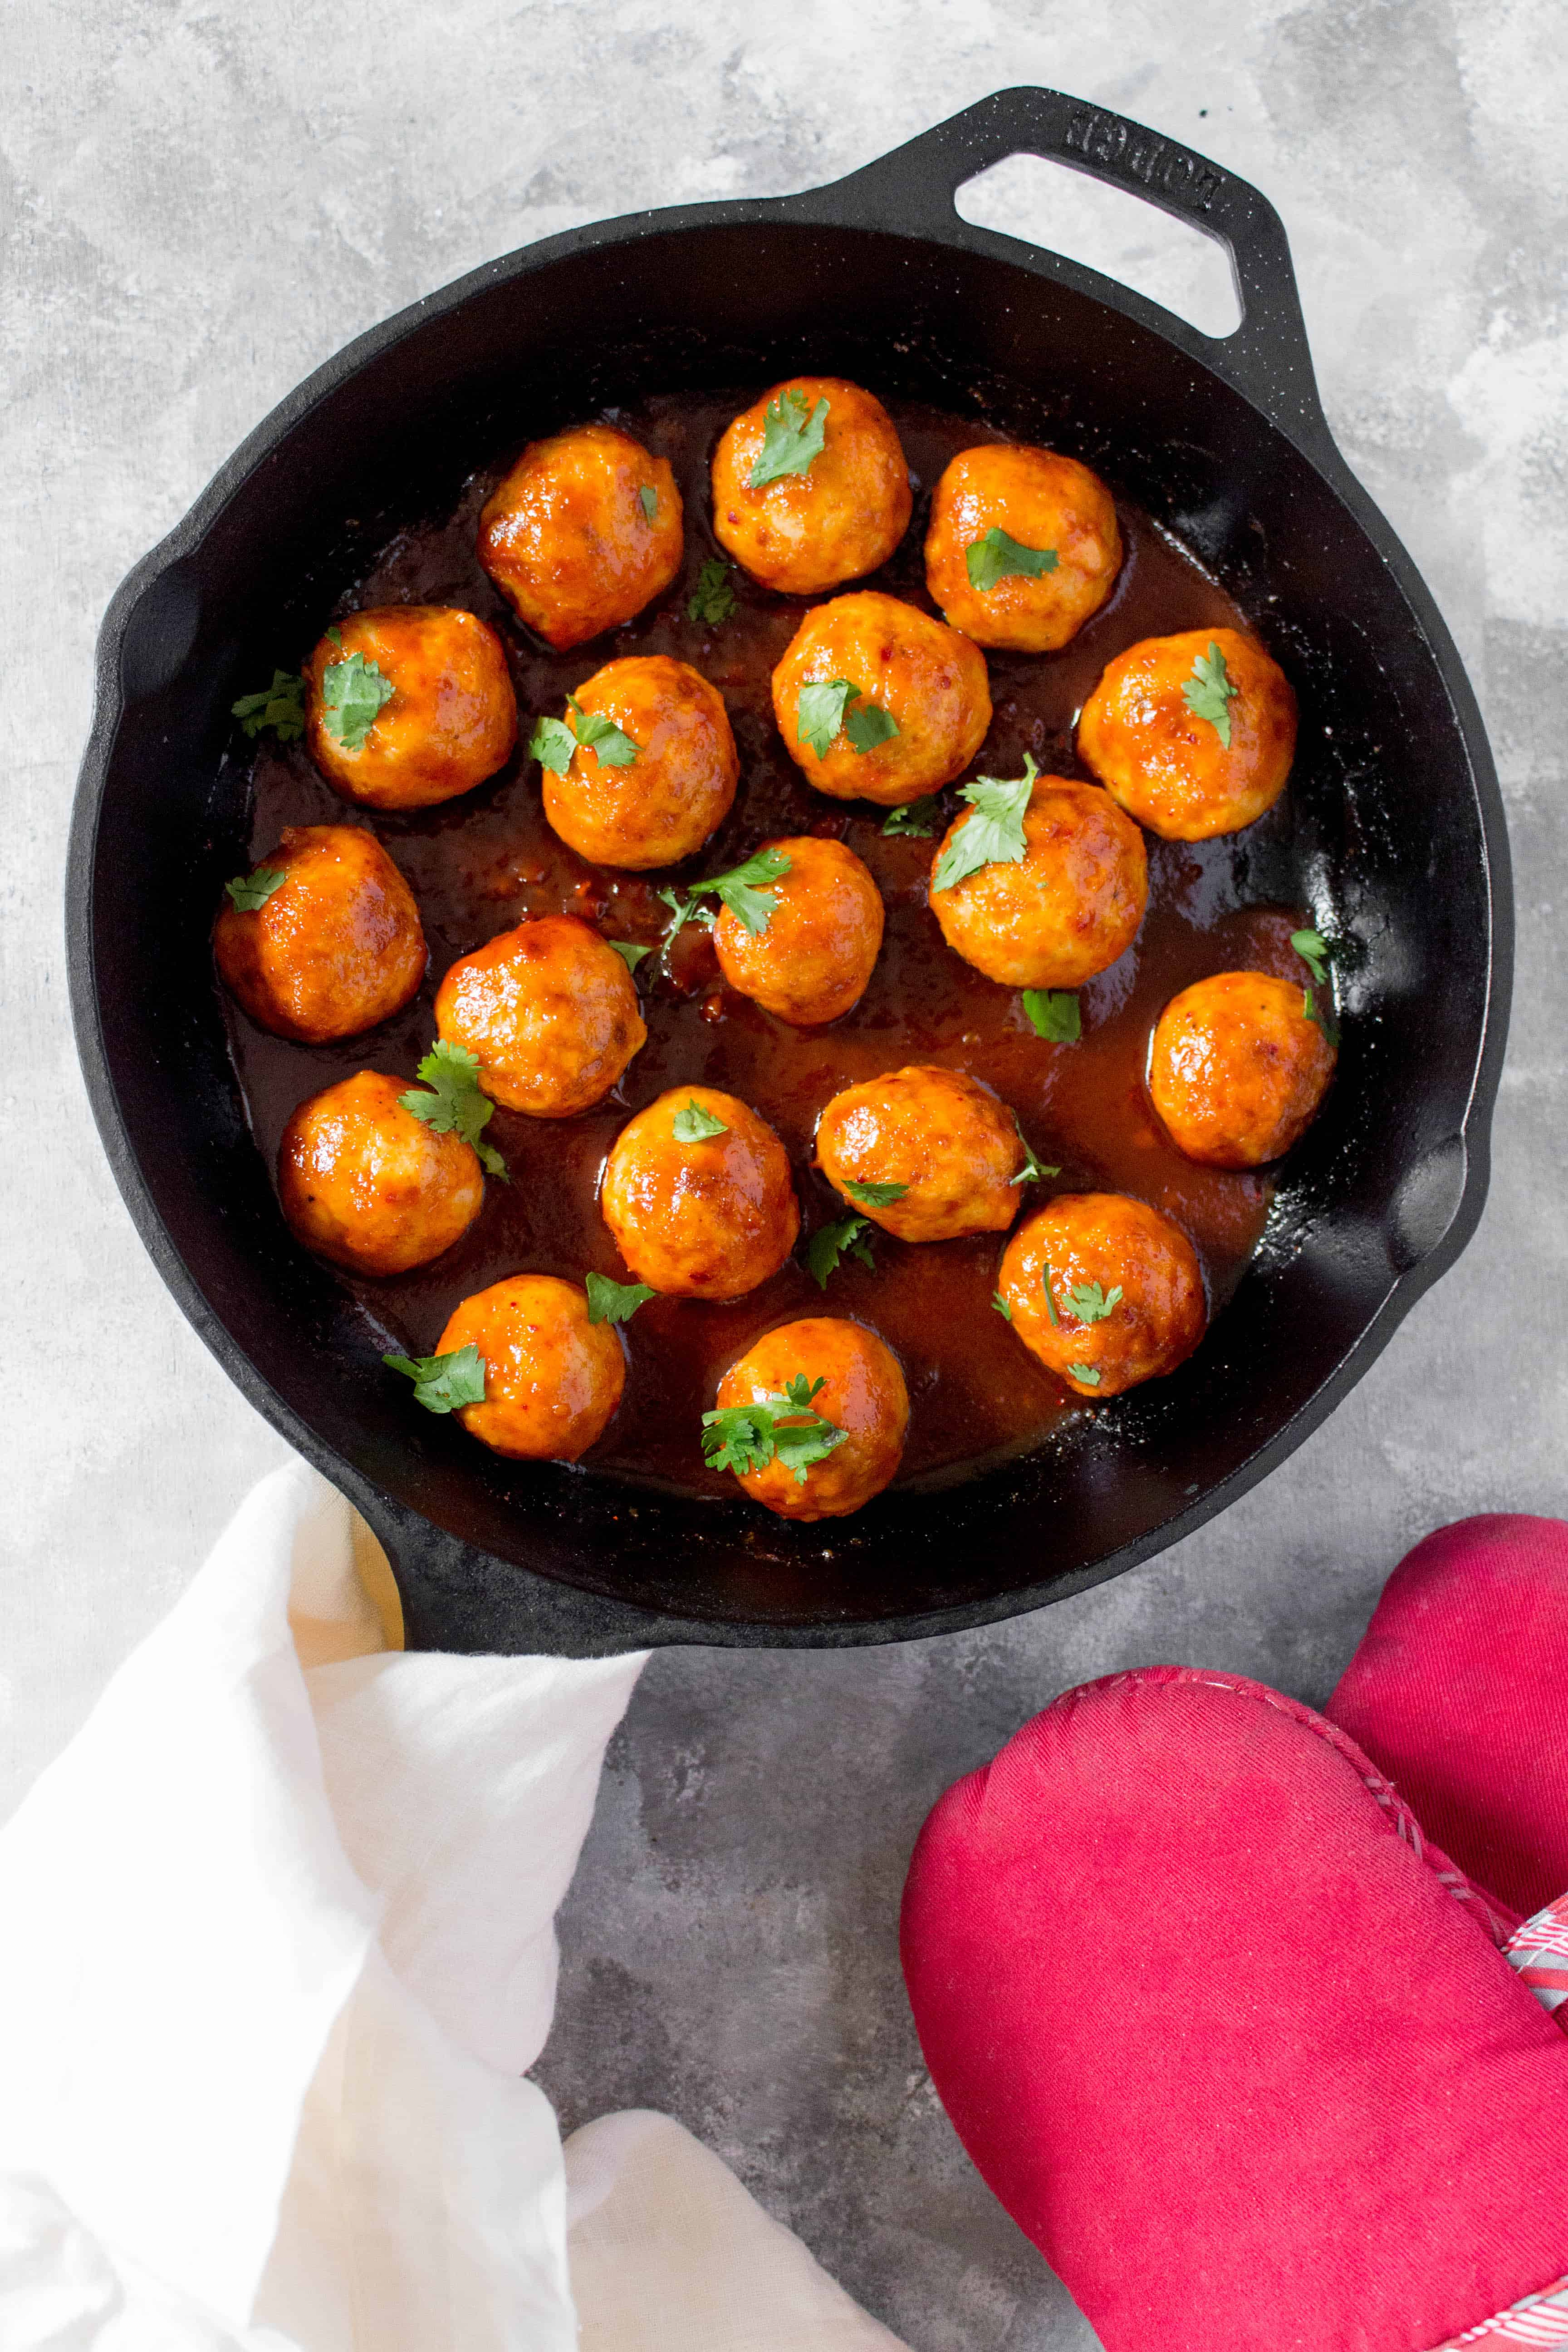 These Tteokbokki Inspired Korean Meatballs are going to change up the way you eat meatballs! Great as an easy weeknight dinner or as a meal prep.